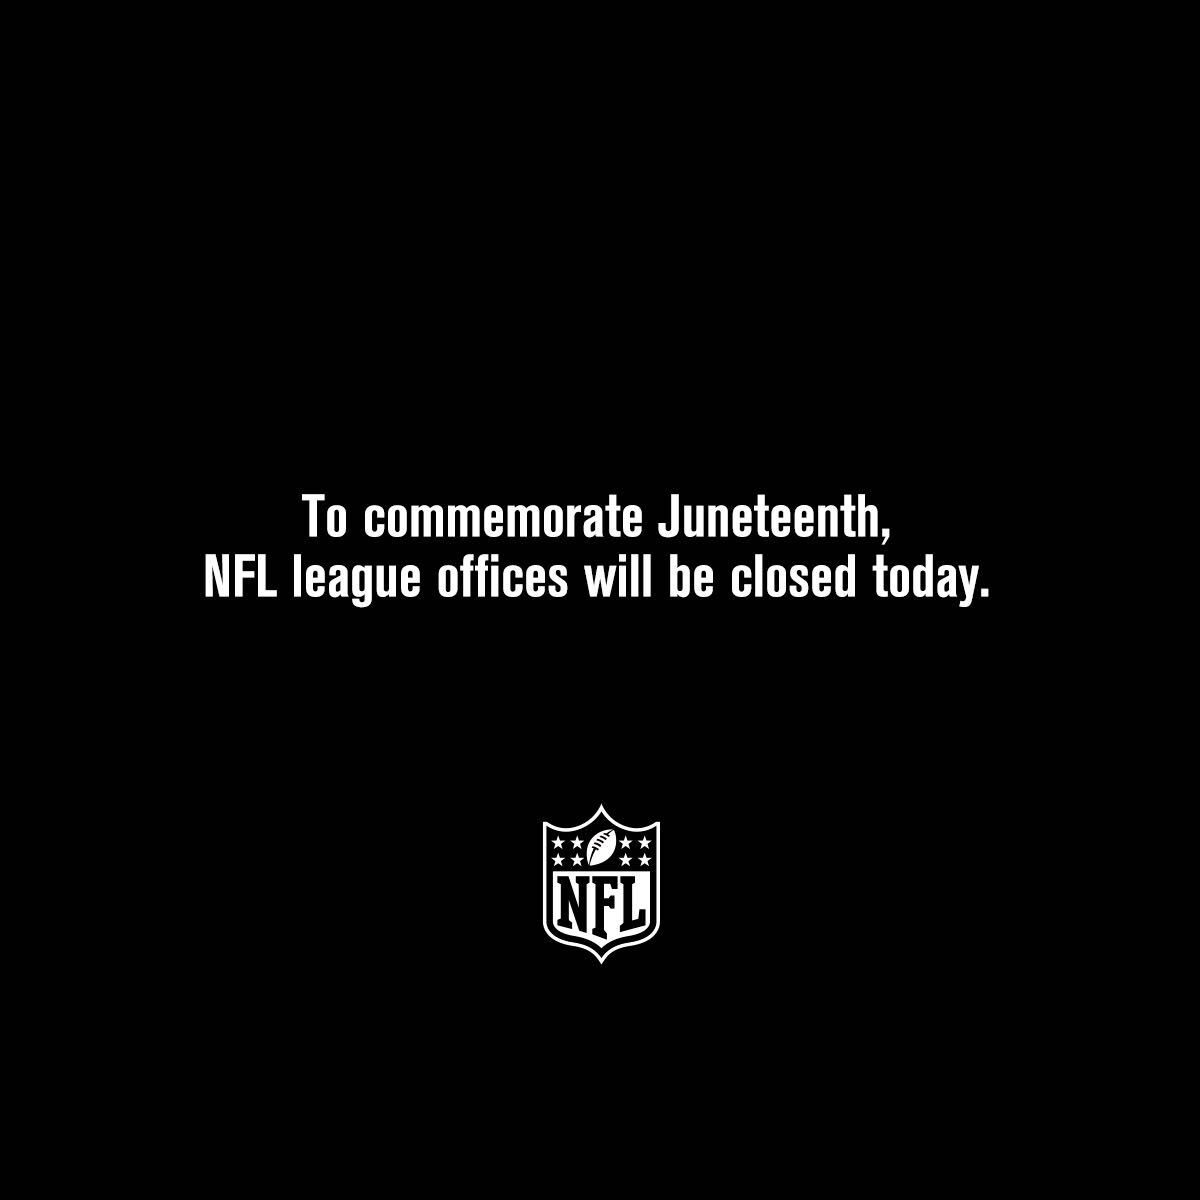 The NFL will observe Juneteenth as a recognized holiday and our league offices will be closed today: https://t.co/AoJSocoYDQ https://t.co/BEkSrMXeHy